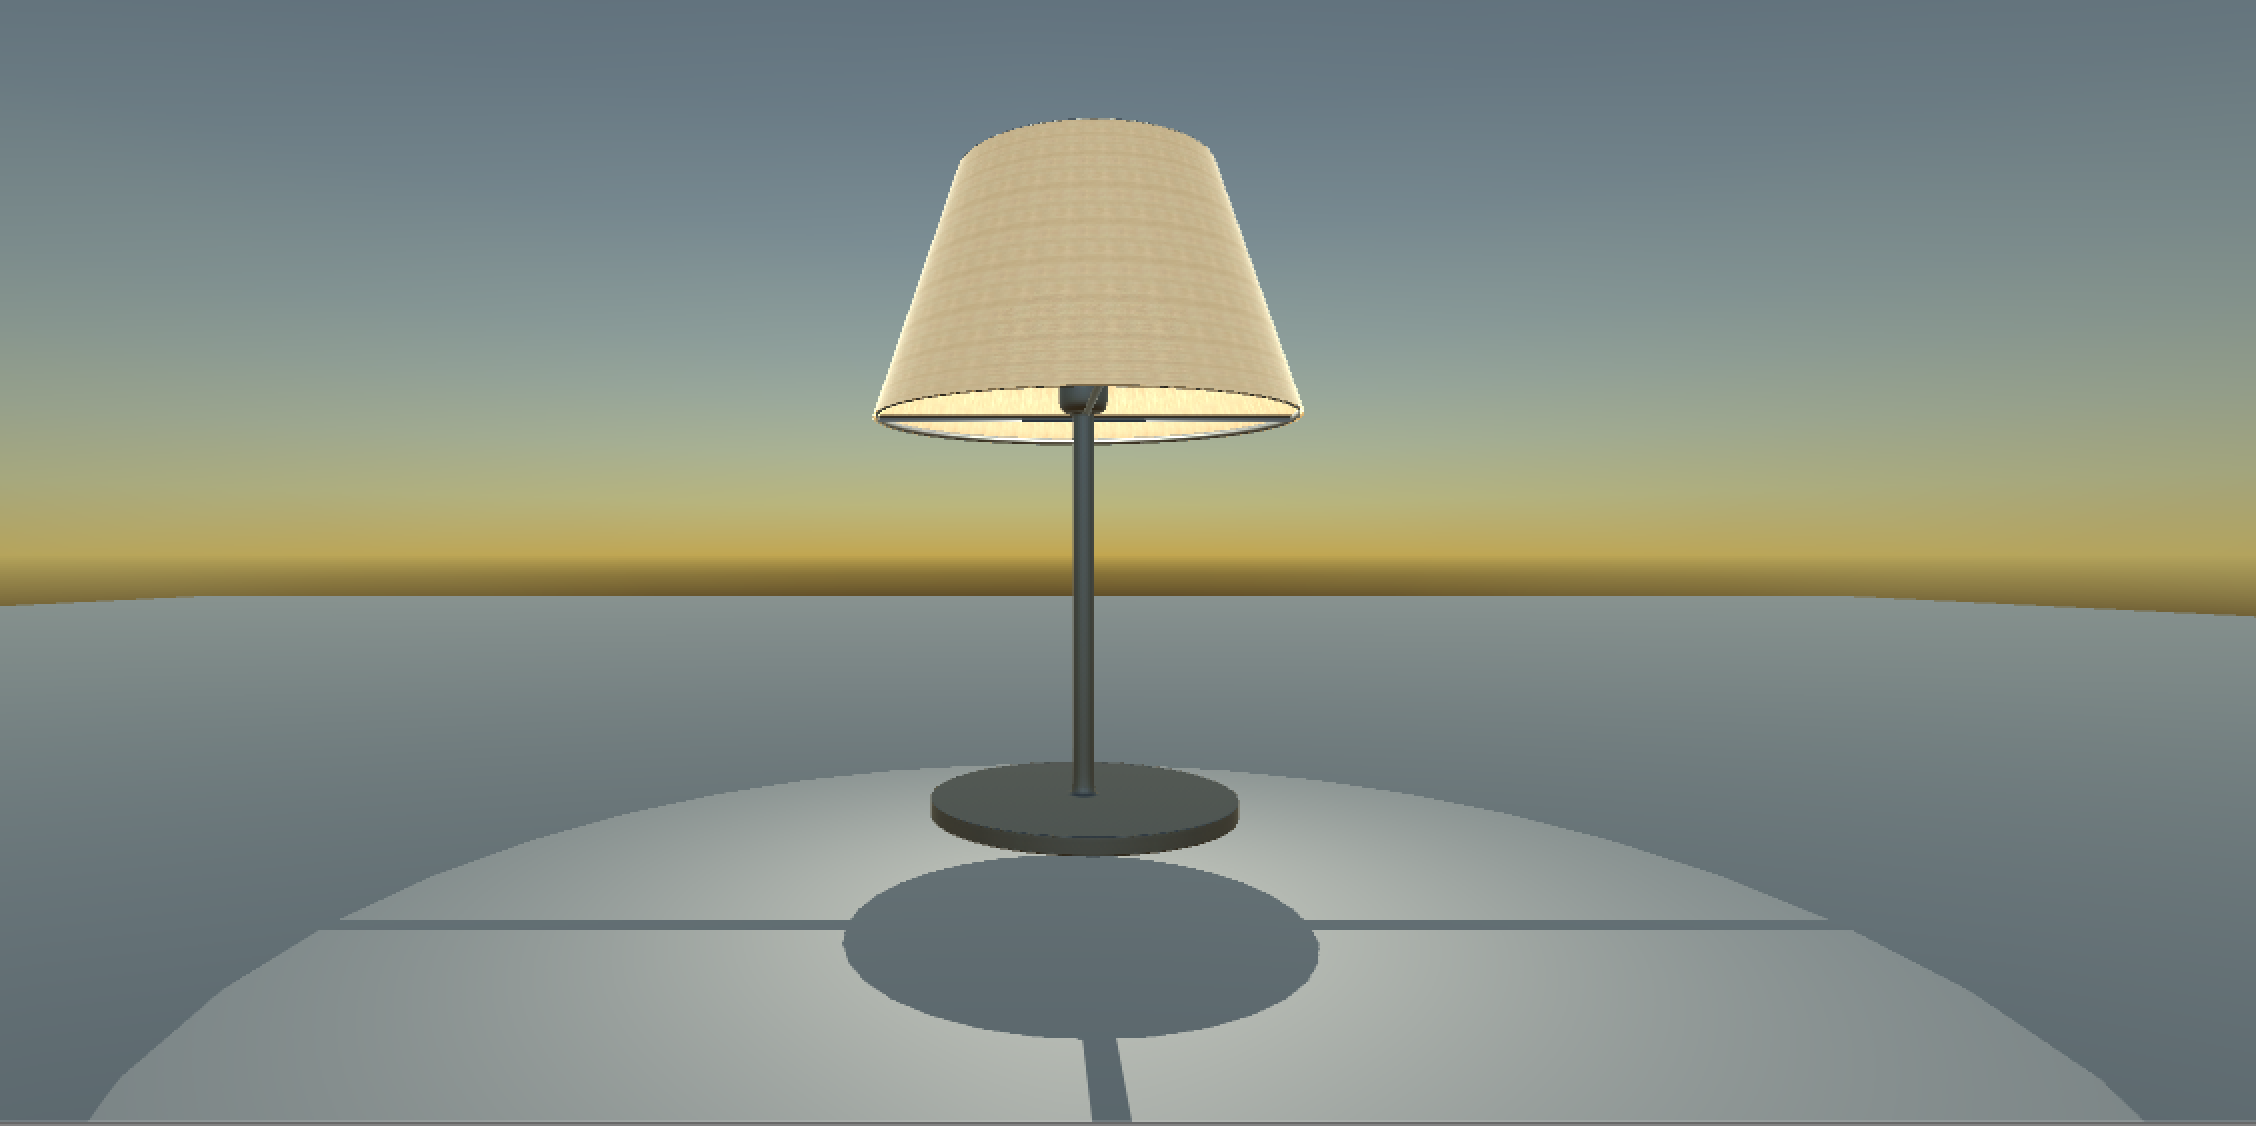 How to make a working ( turn on/off lights-c# script) lamp